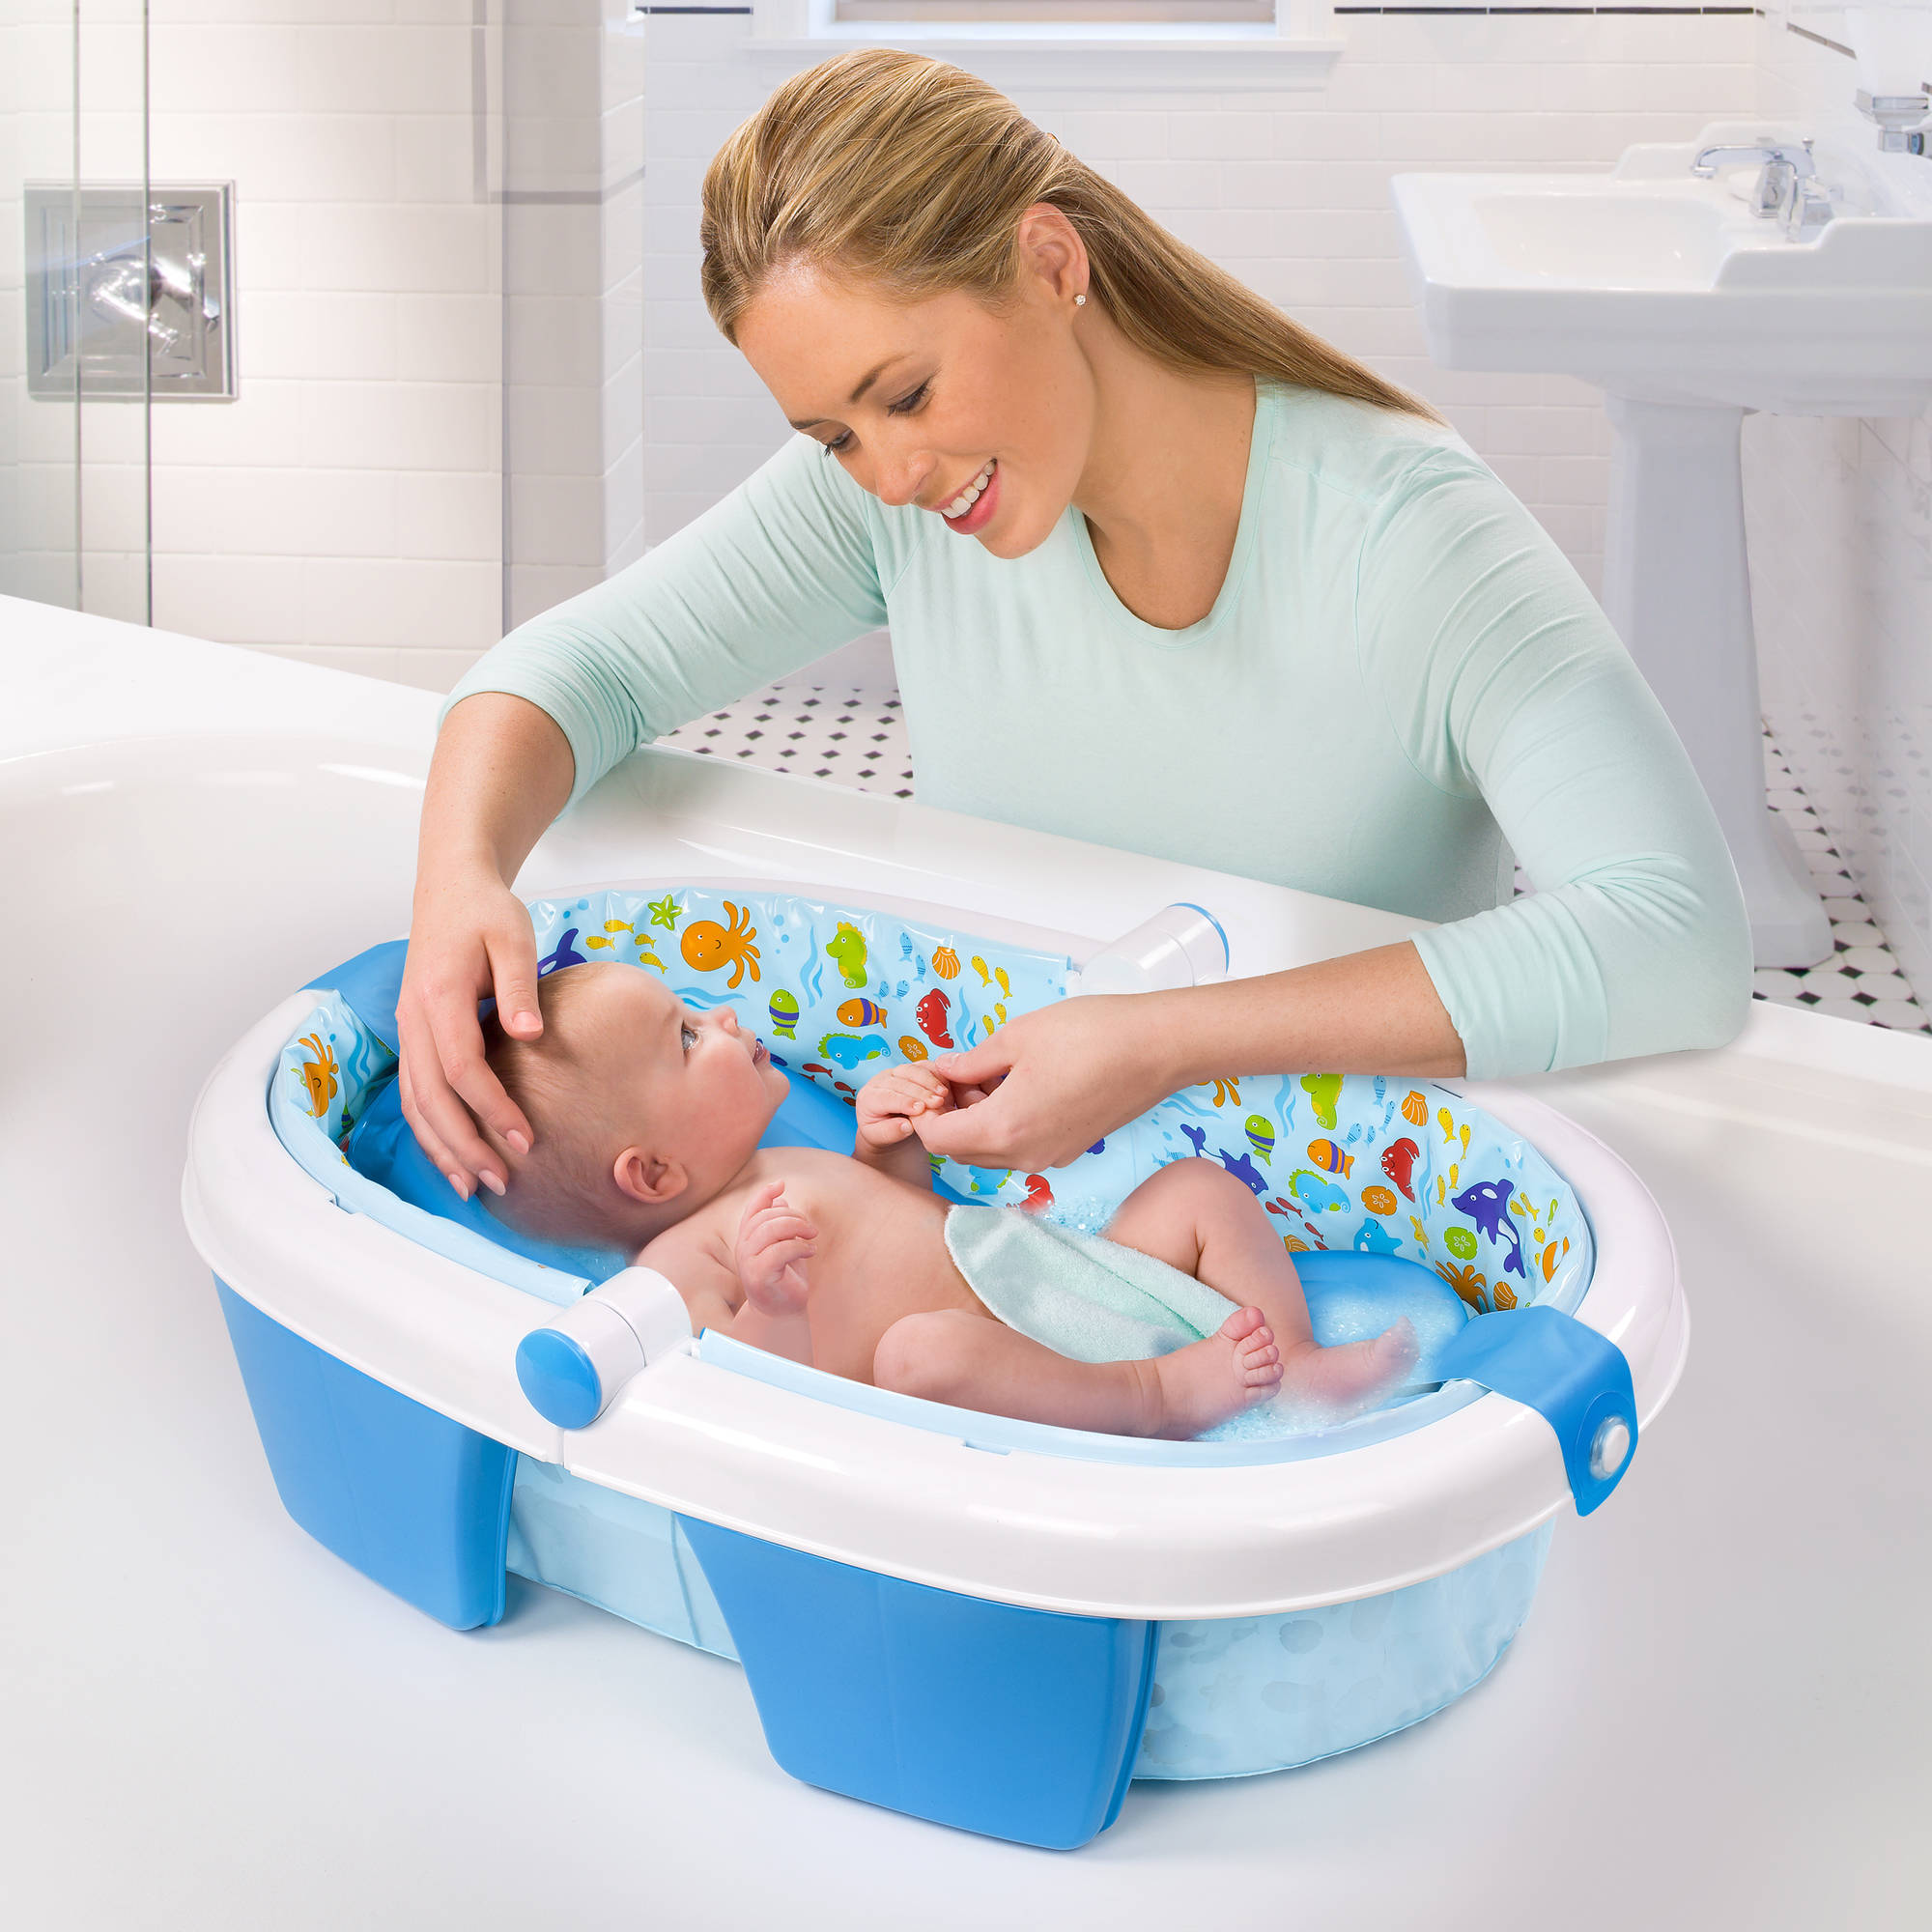 Baby bath chairs for the tub - Baby Bath Chairs For The Tub 21